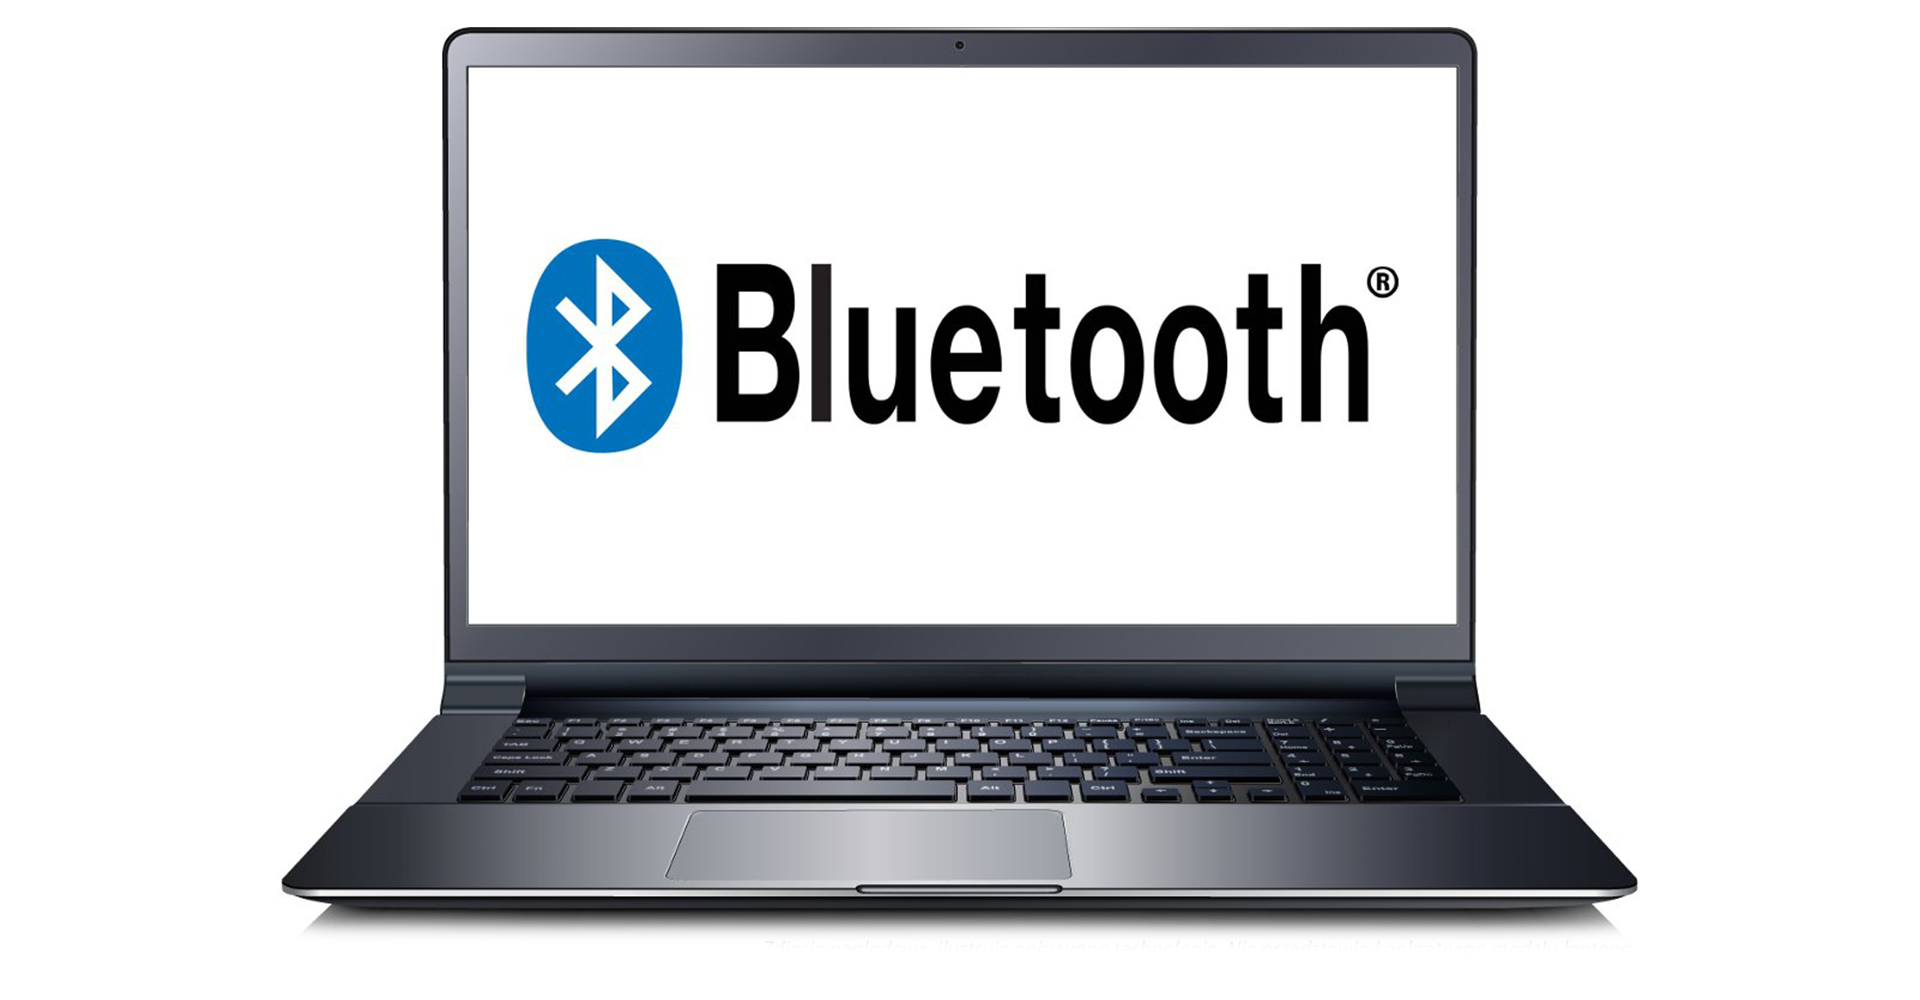 Sülearvuti Dell Vostro 7570 i5-7300HQ 8GB 1TB + 128GB LIN                             Bluetooth